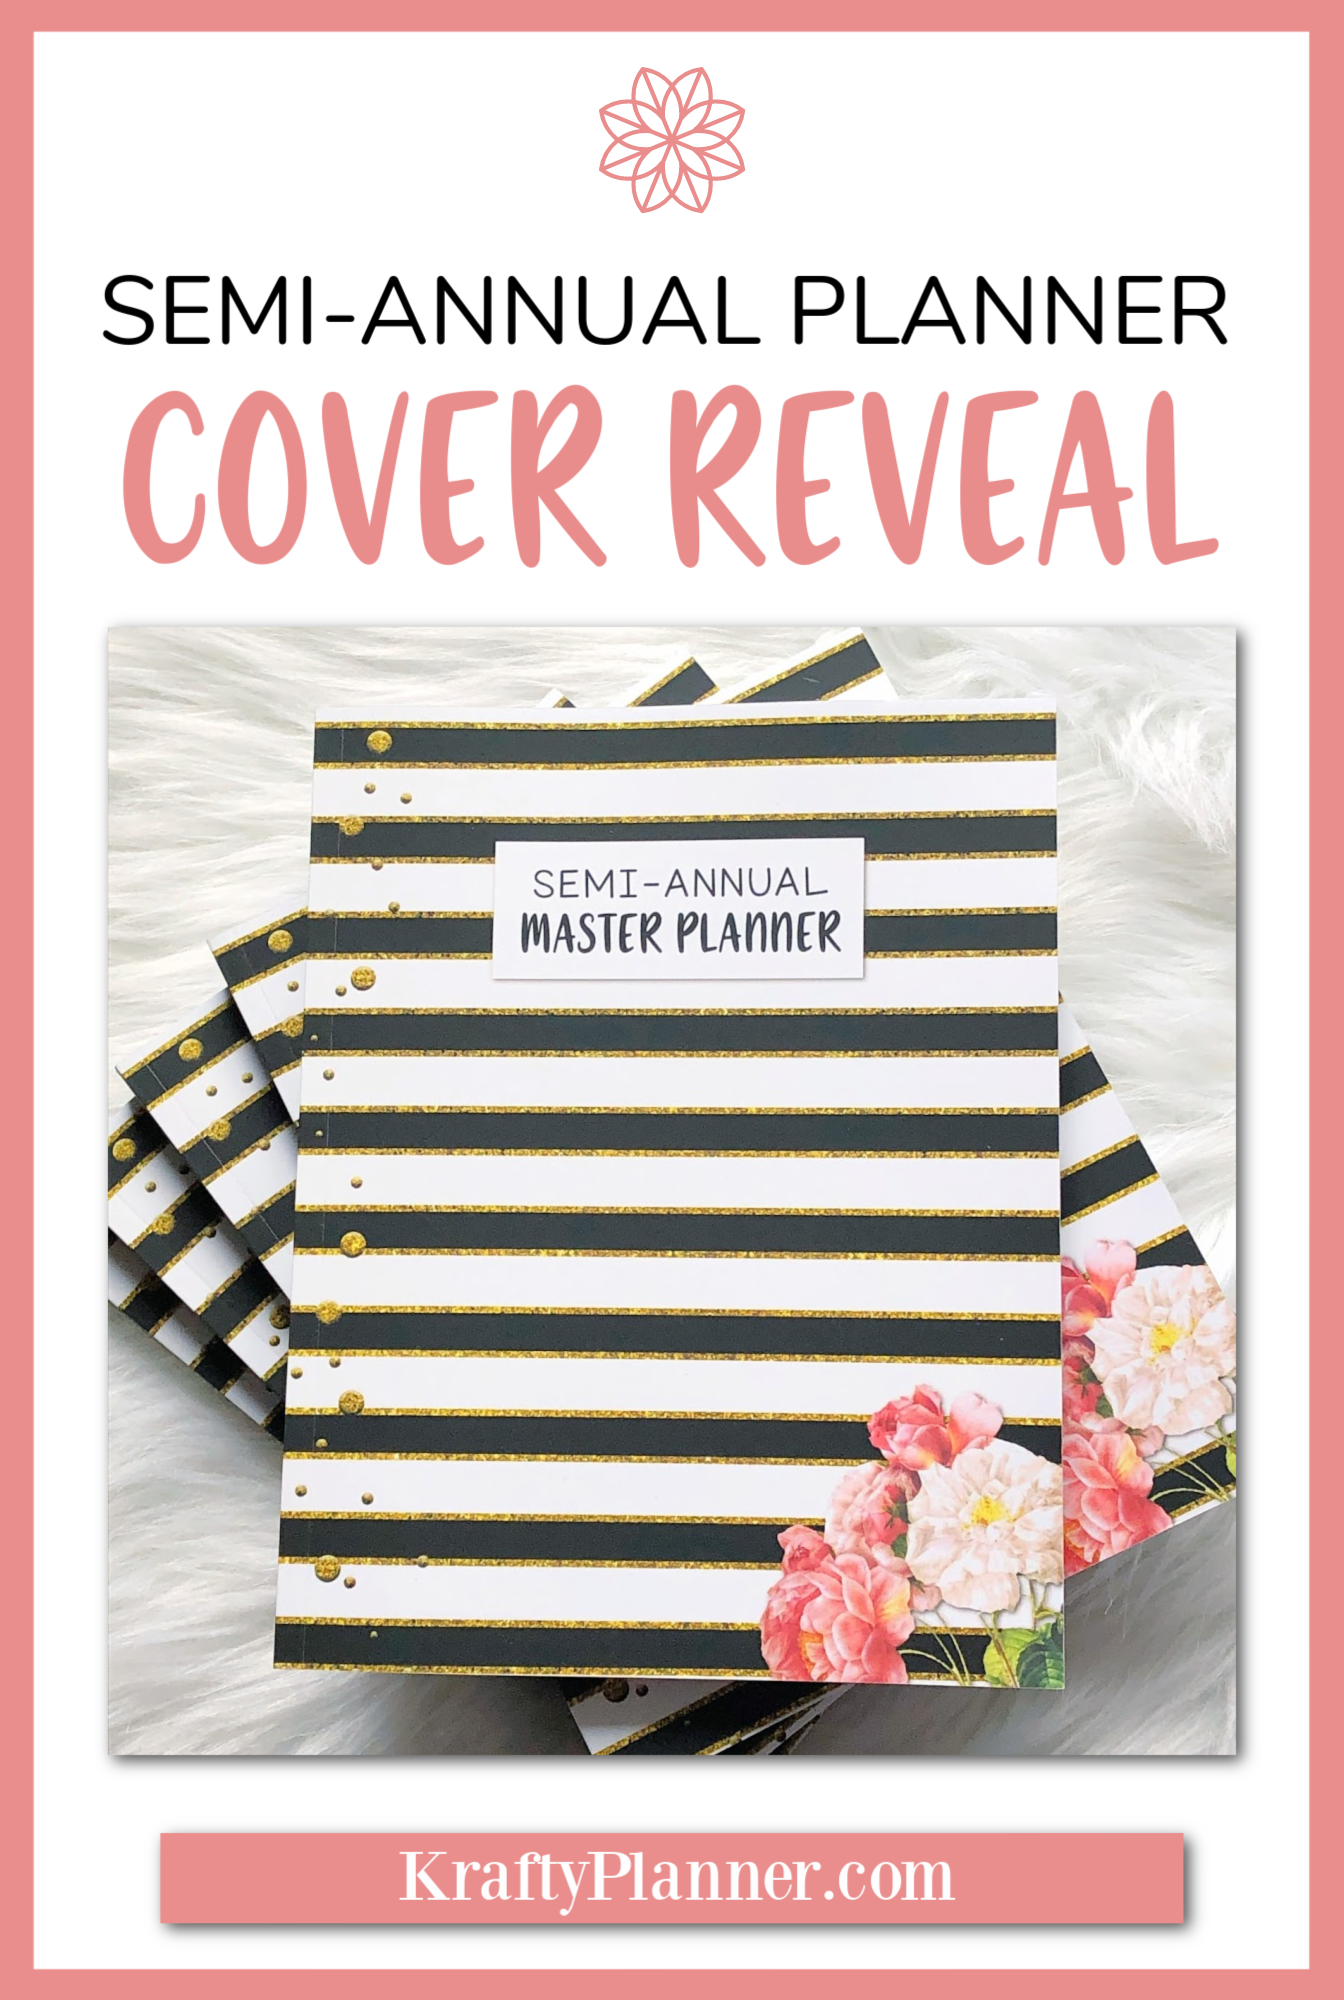 Semi Annual Planner Cover Reveal PIN 2.png